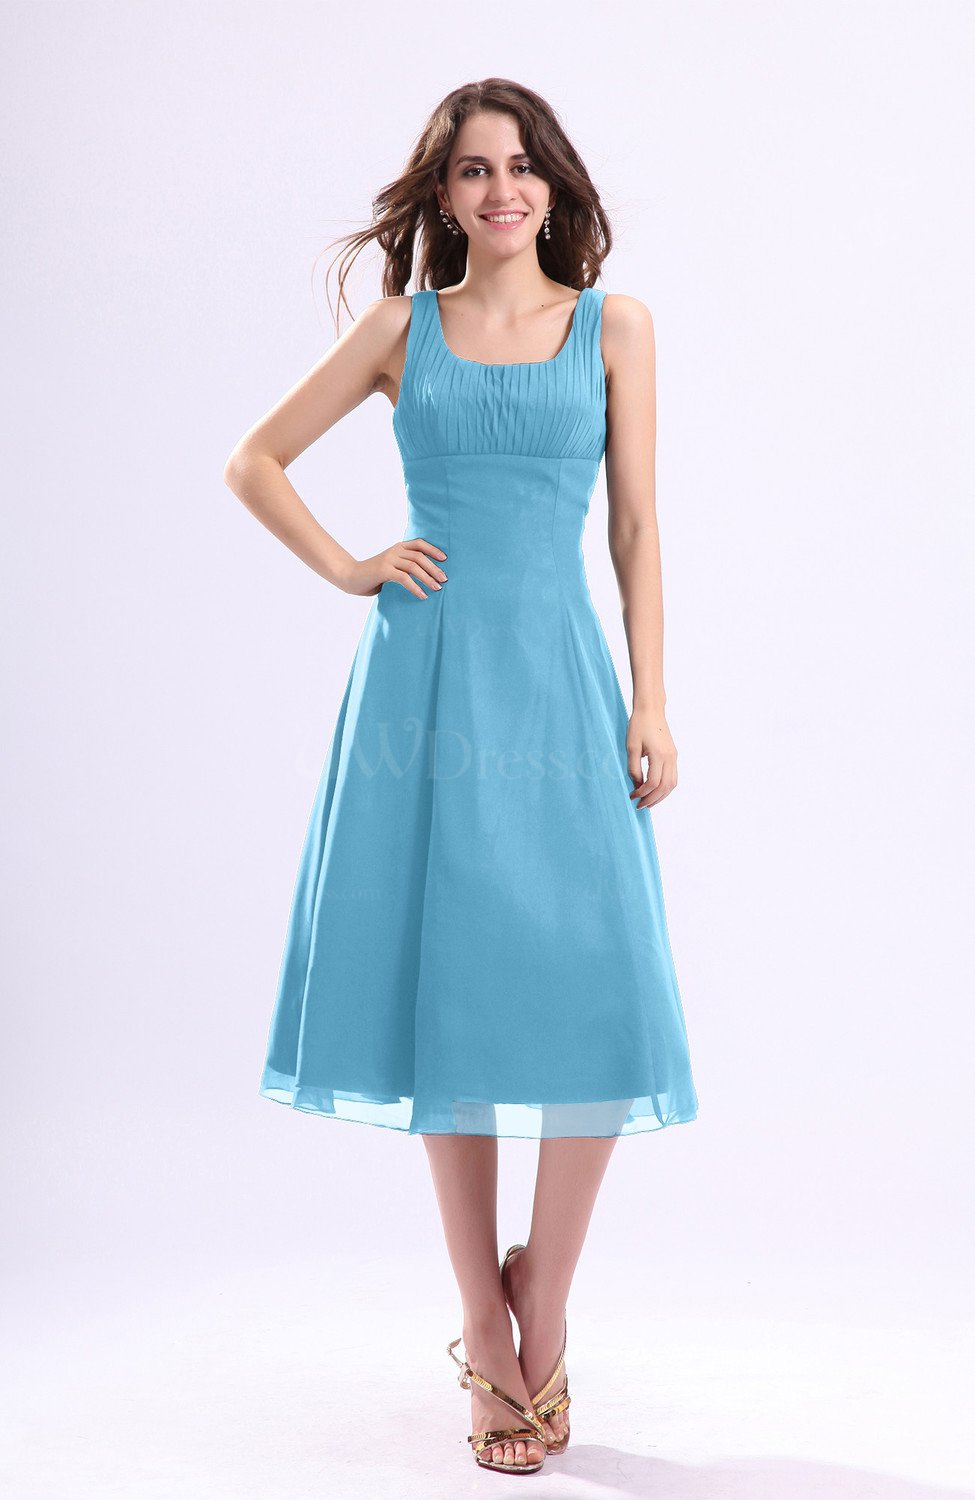 896e5352d35 Light Blue Simple A-line Square Sleeveless Zip up Wedding Guest Dresses  (Style D96656)